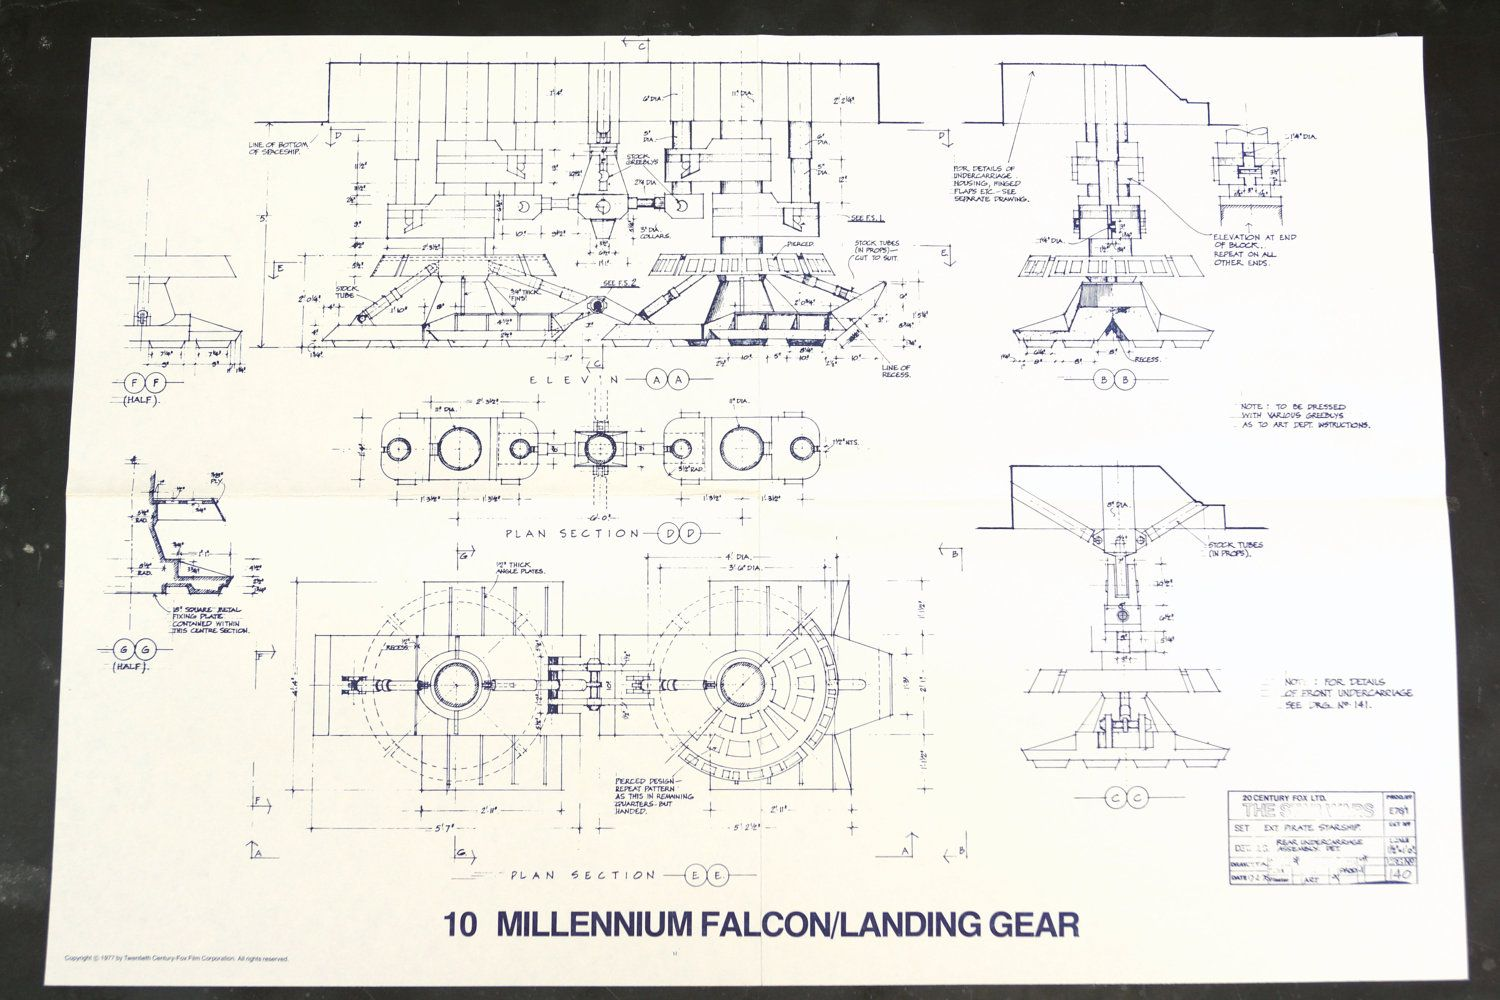 Vintage star wars blueprint for millennium falcon landing gear 10 vintage star wars blueprint for millennium falcon by third shift on etsy malvernweather Images